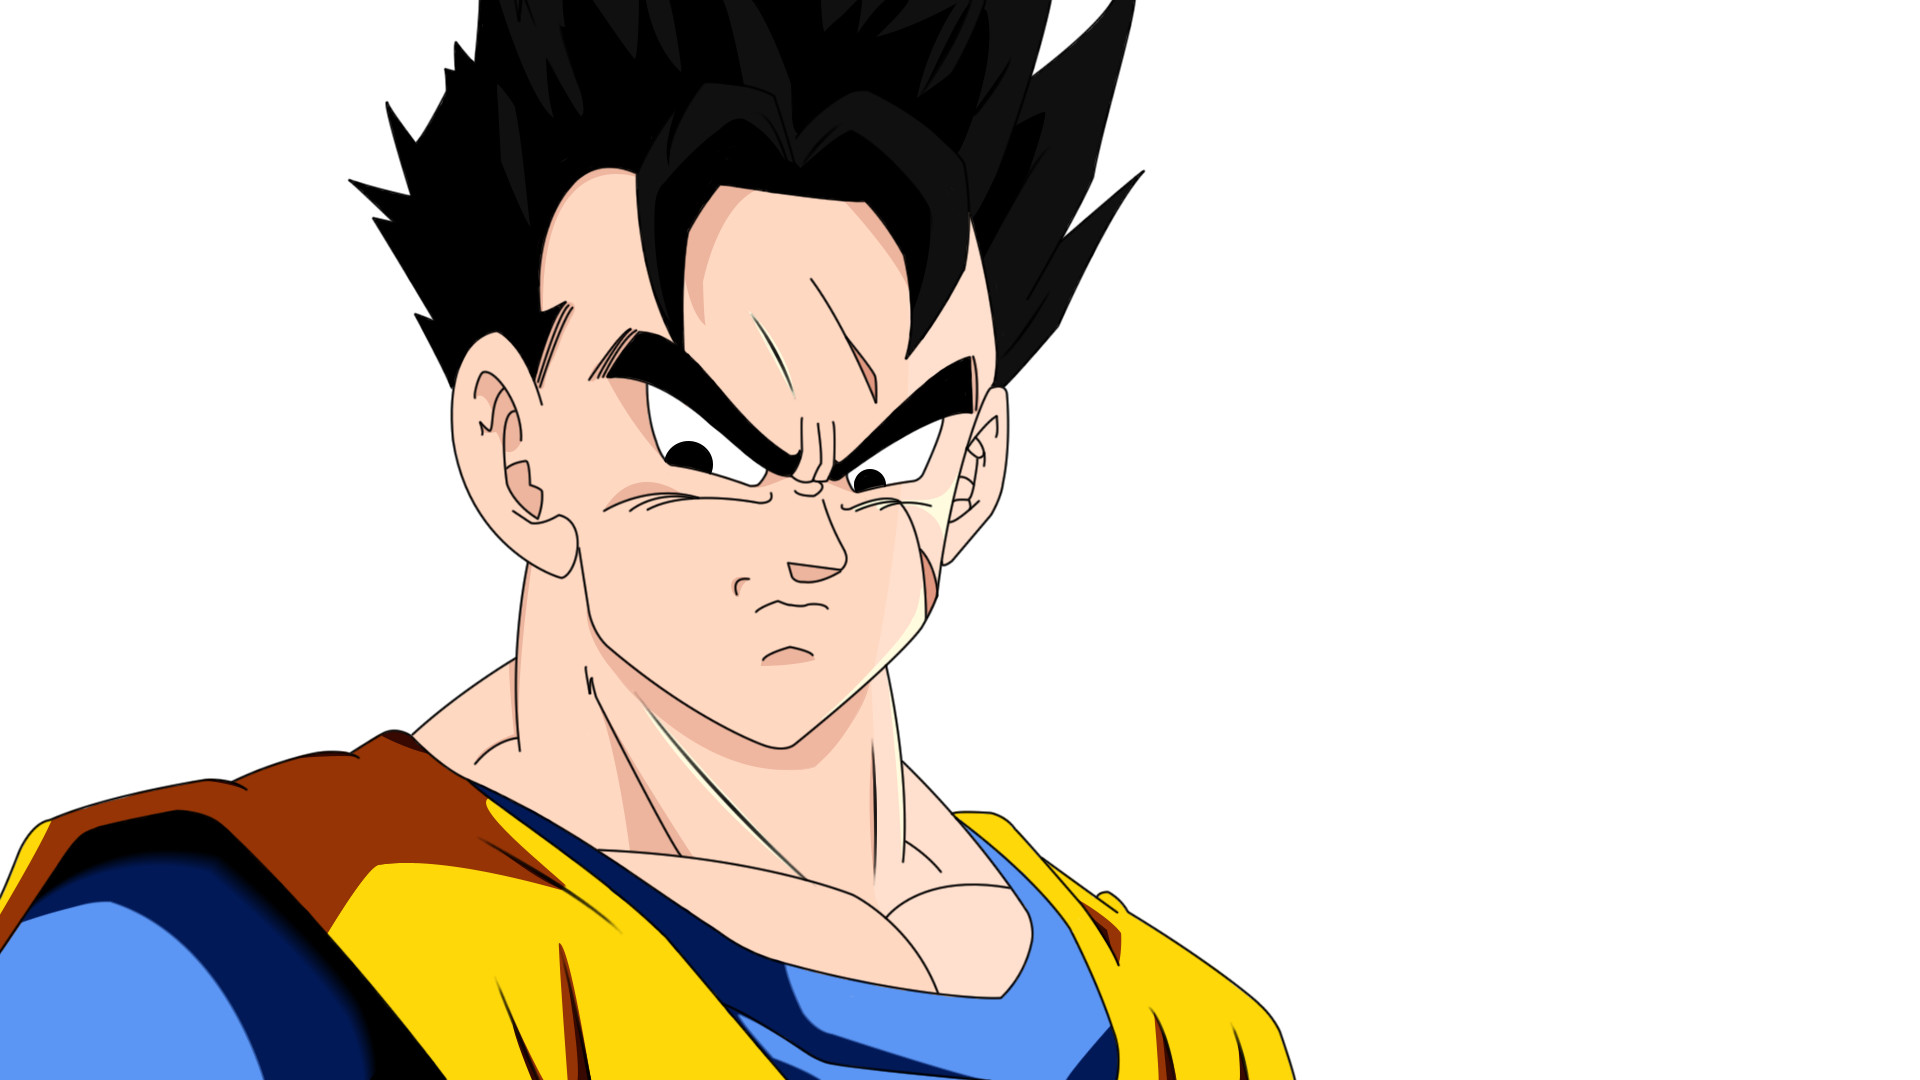 Future Gohan Render by DesertWiggle Future Gohan Render by DesertWiggle